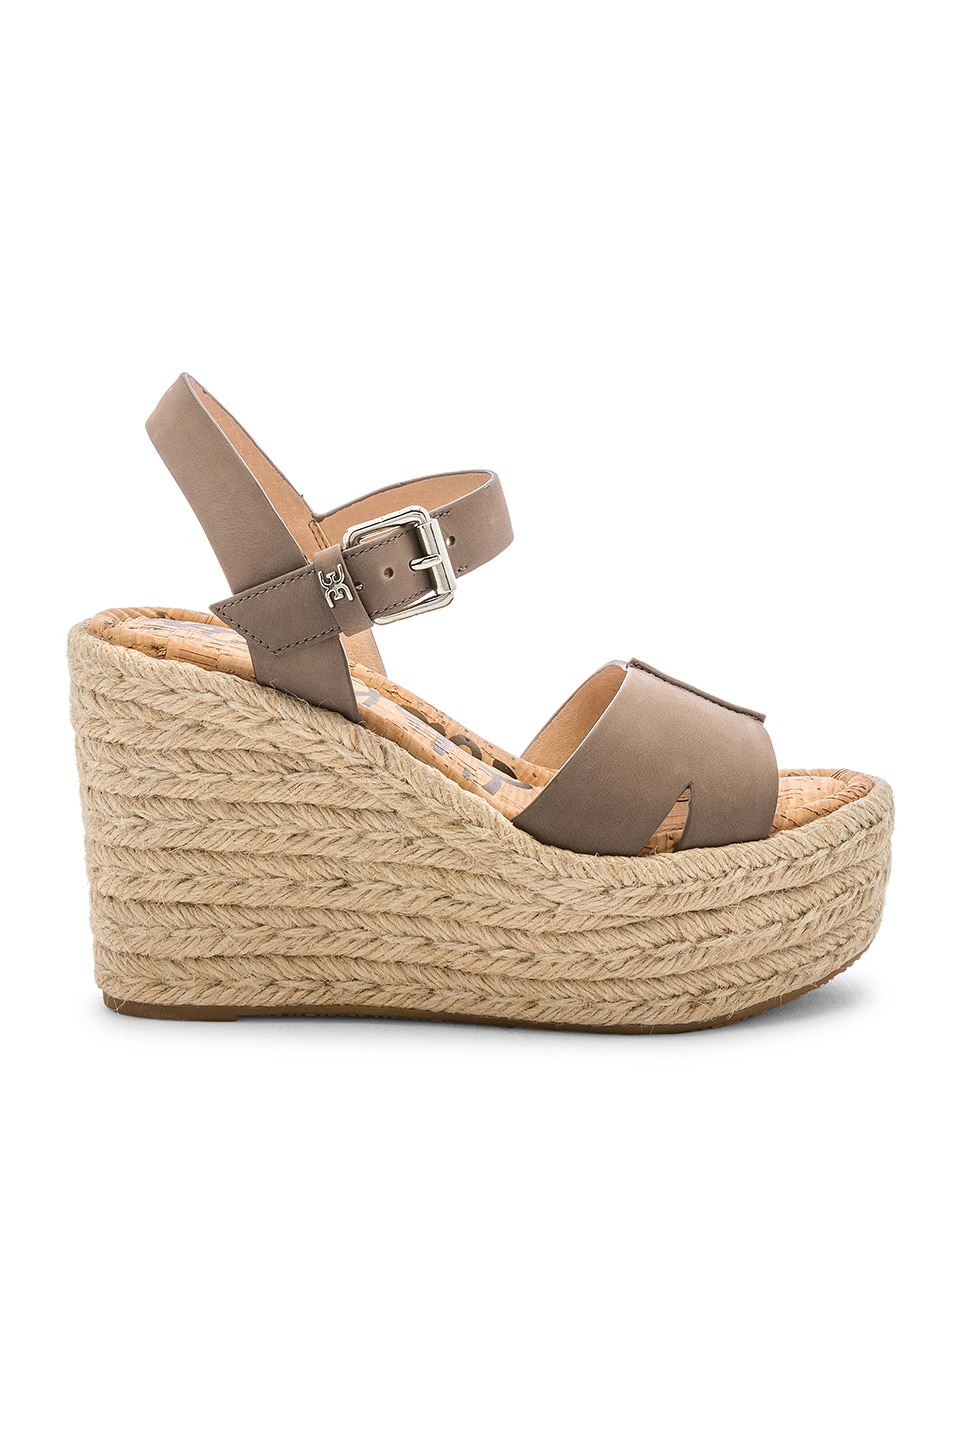 Sam Edelman Maura Wedge in Flint Grey